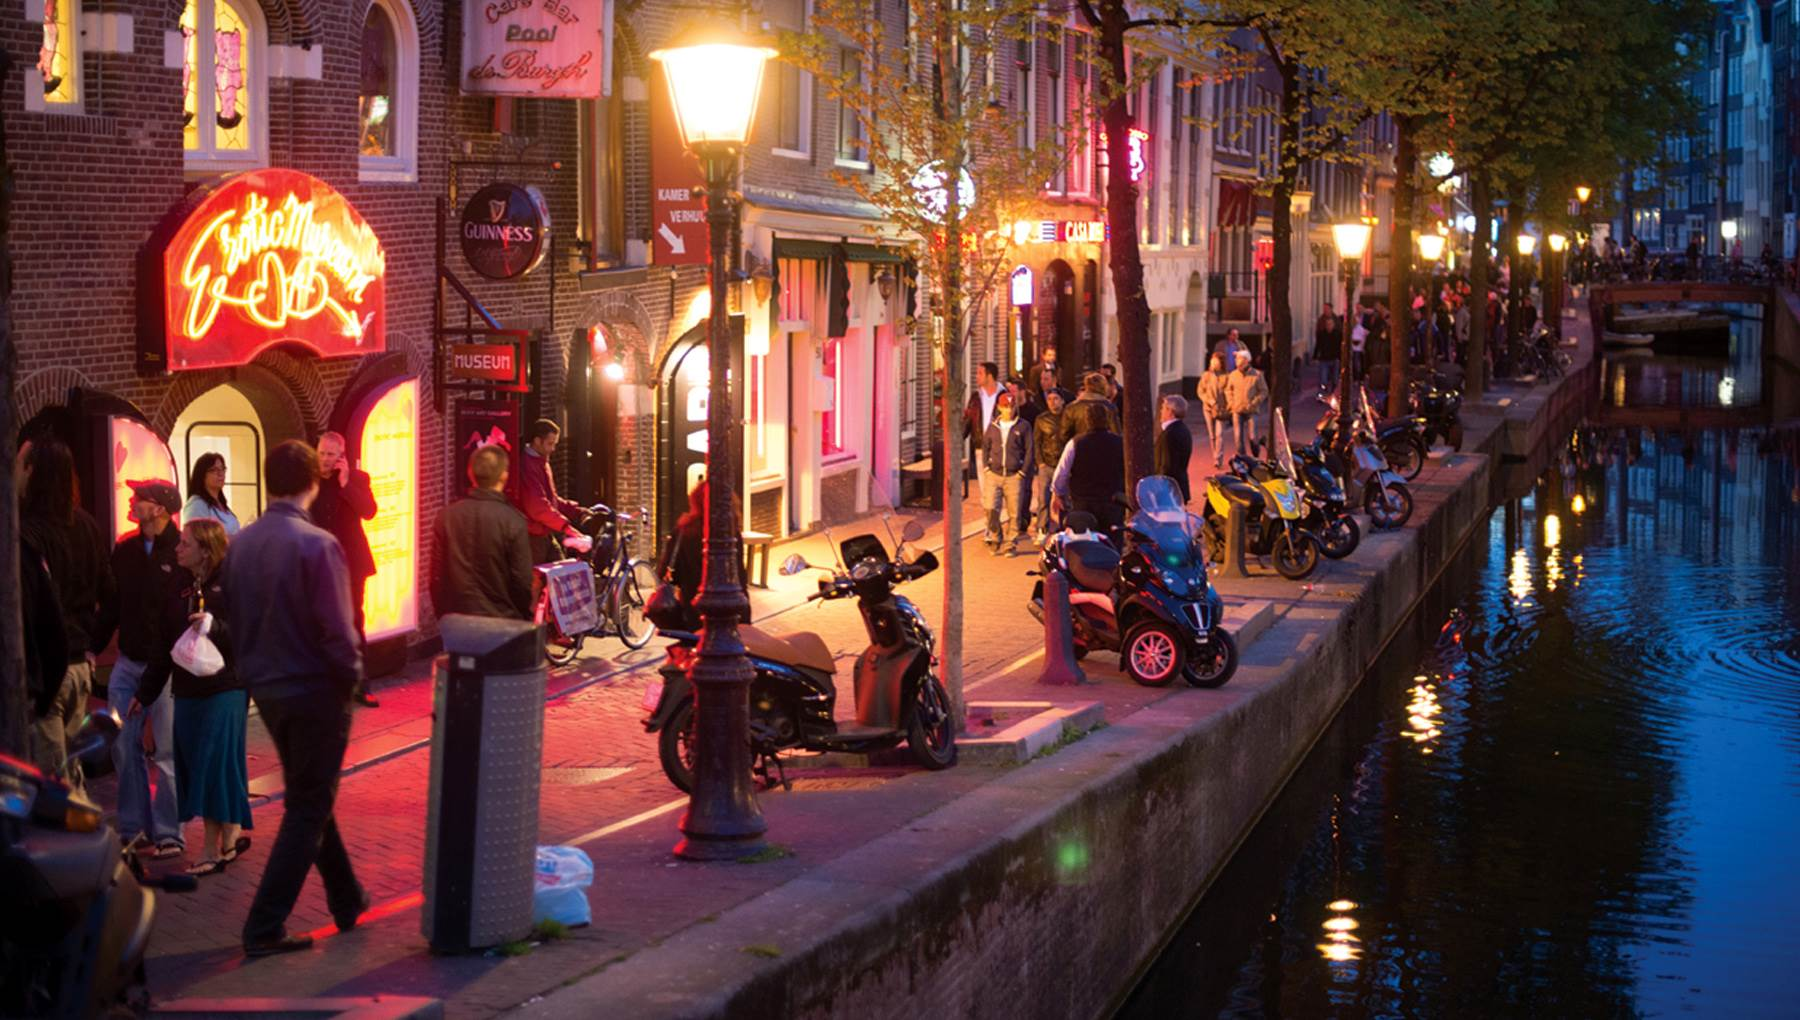 amsterdam and the red light district The red light district in amsterdam is more than sex, drugs and rock 'n roll it's home to great restaurants, designer stores and coffee bars discover the hotspots in this red light district guide.